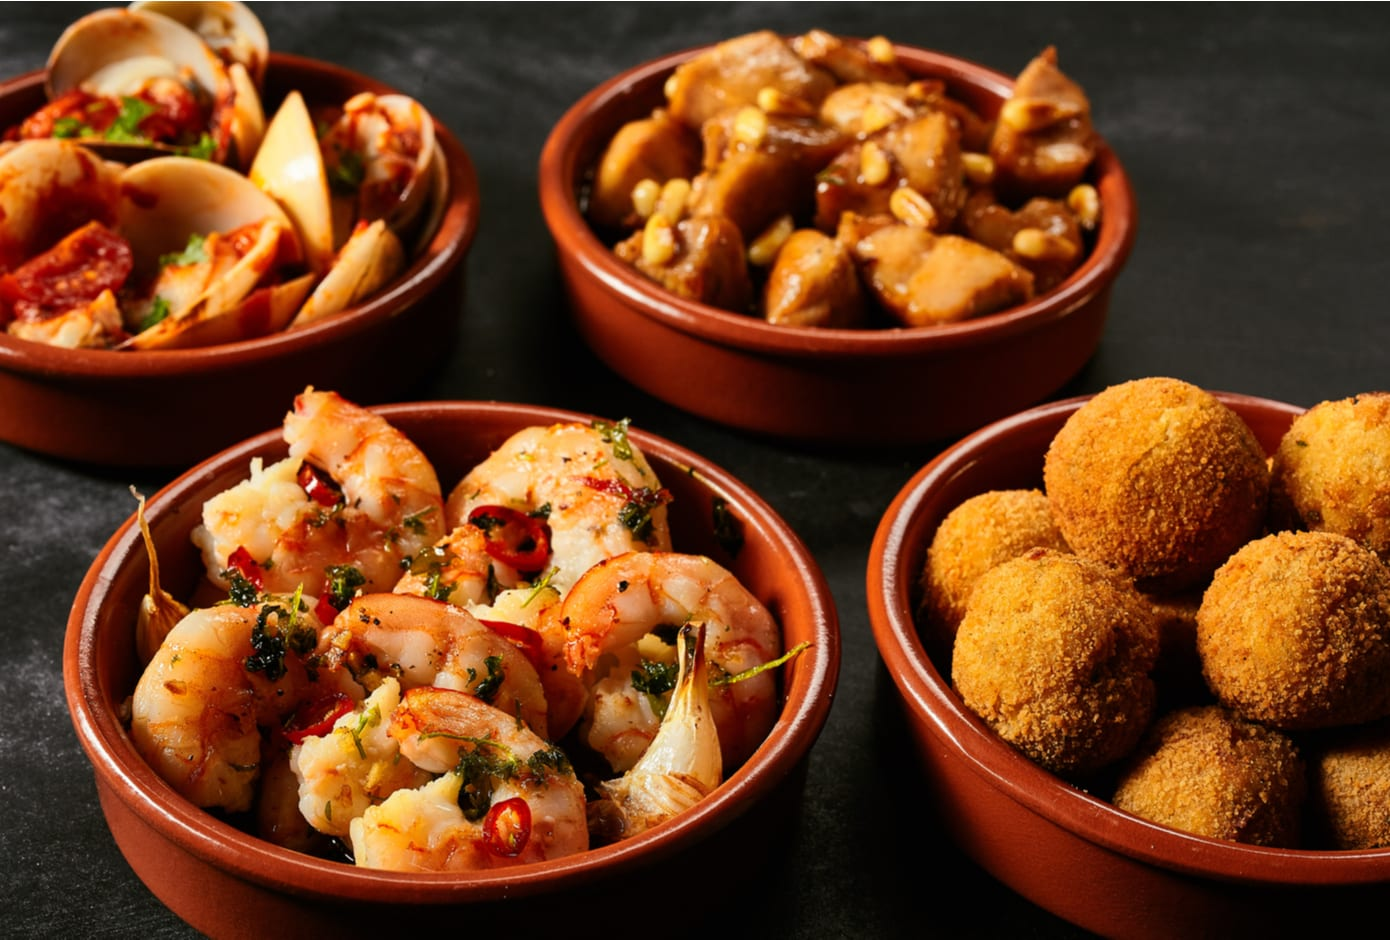 Four red ceramic bowls filled with Spanish tapas.